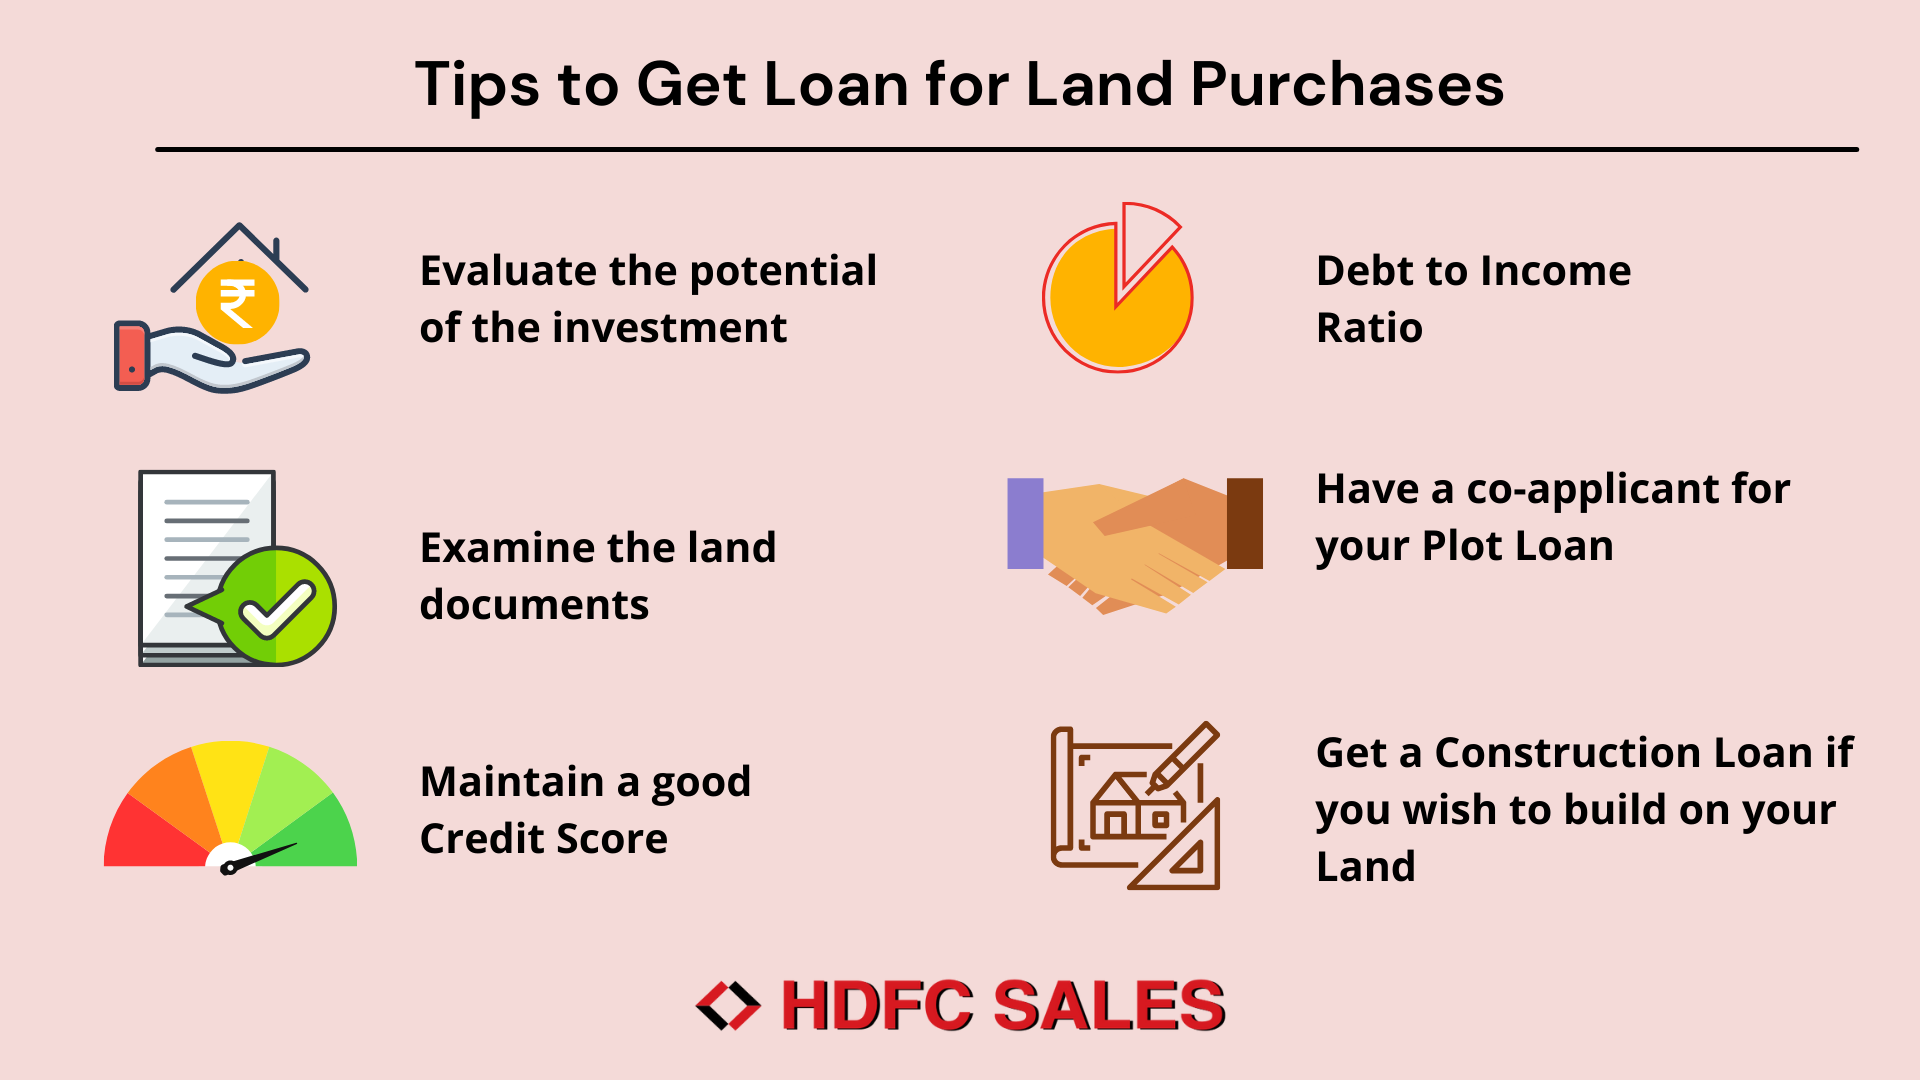 Tips to get a Land Loan